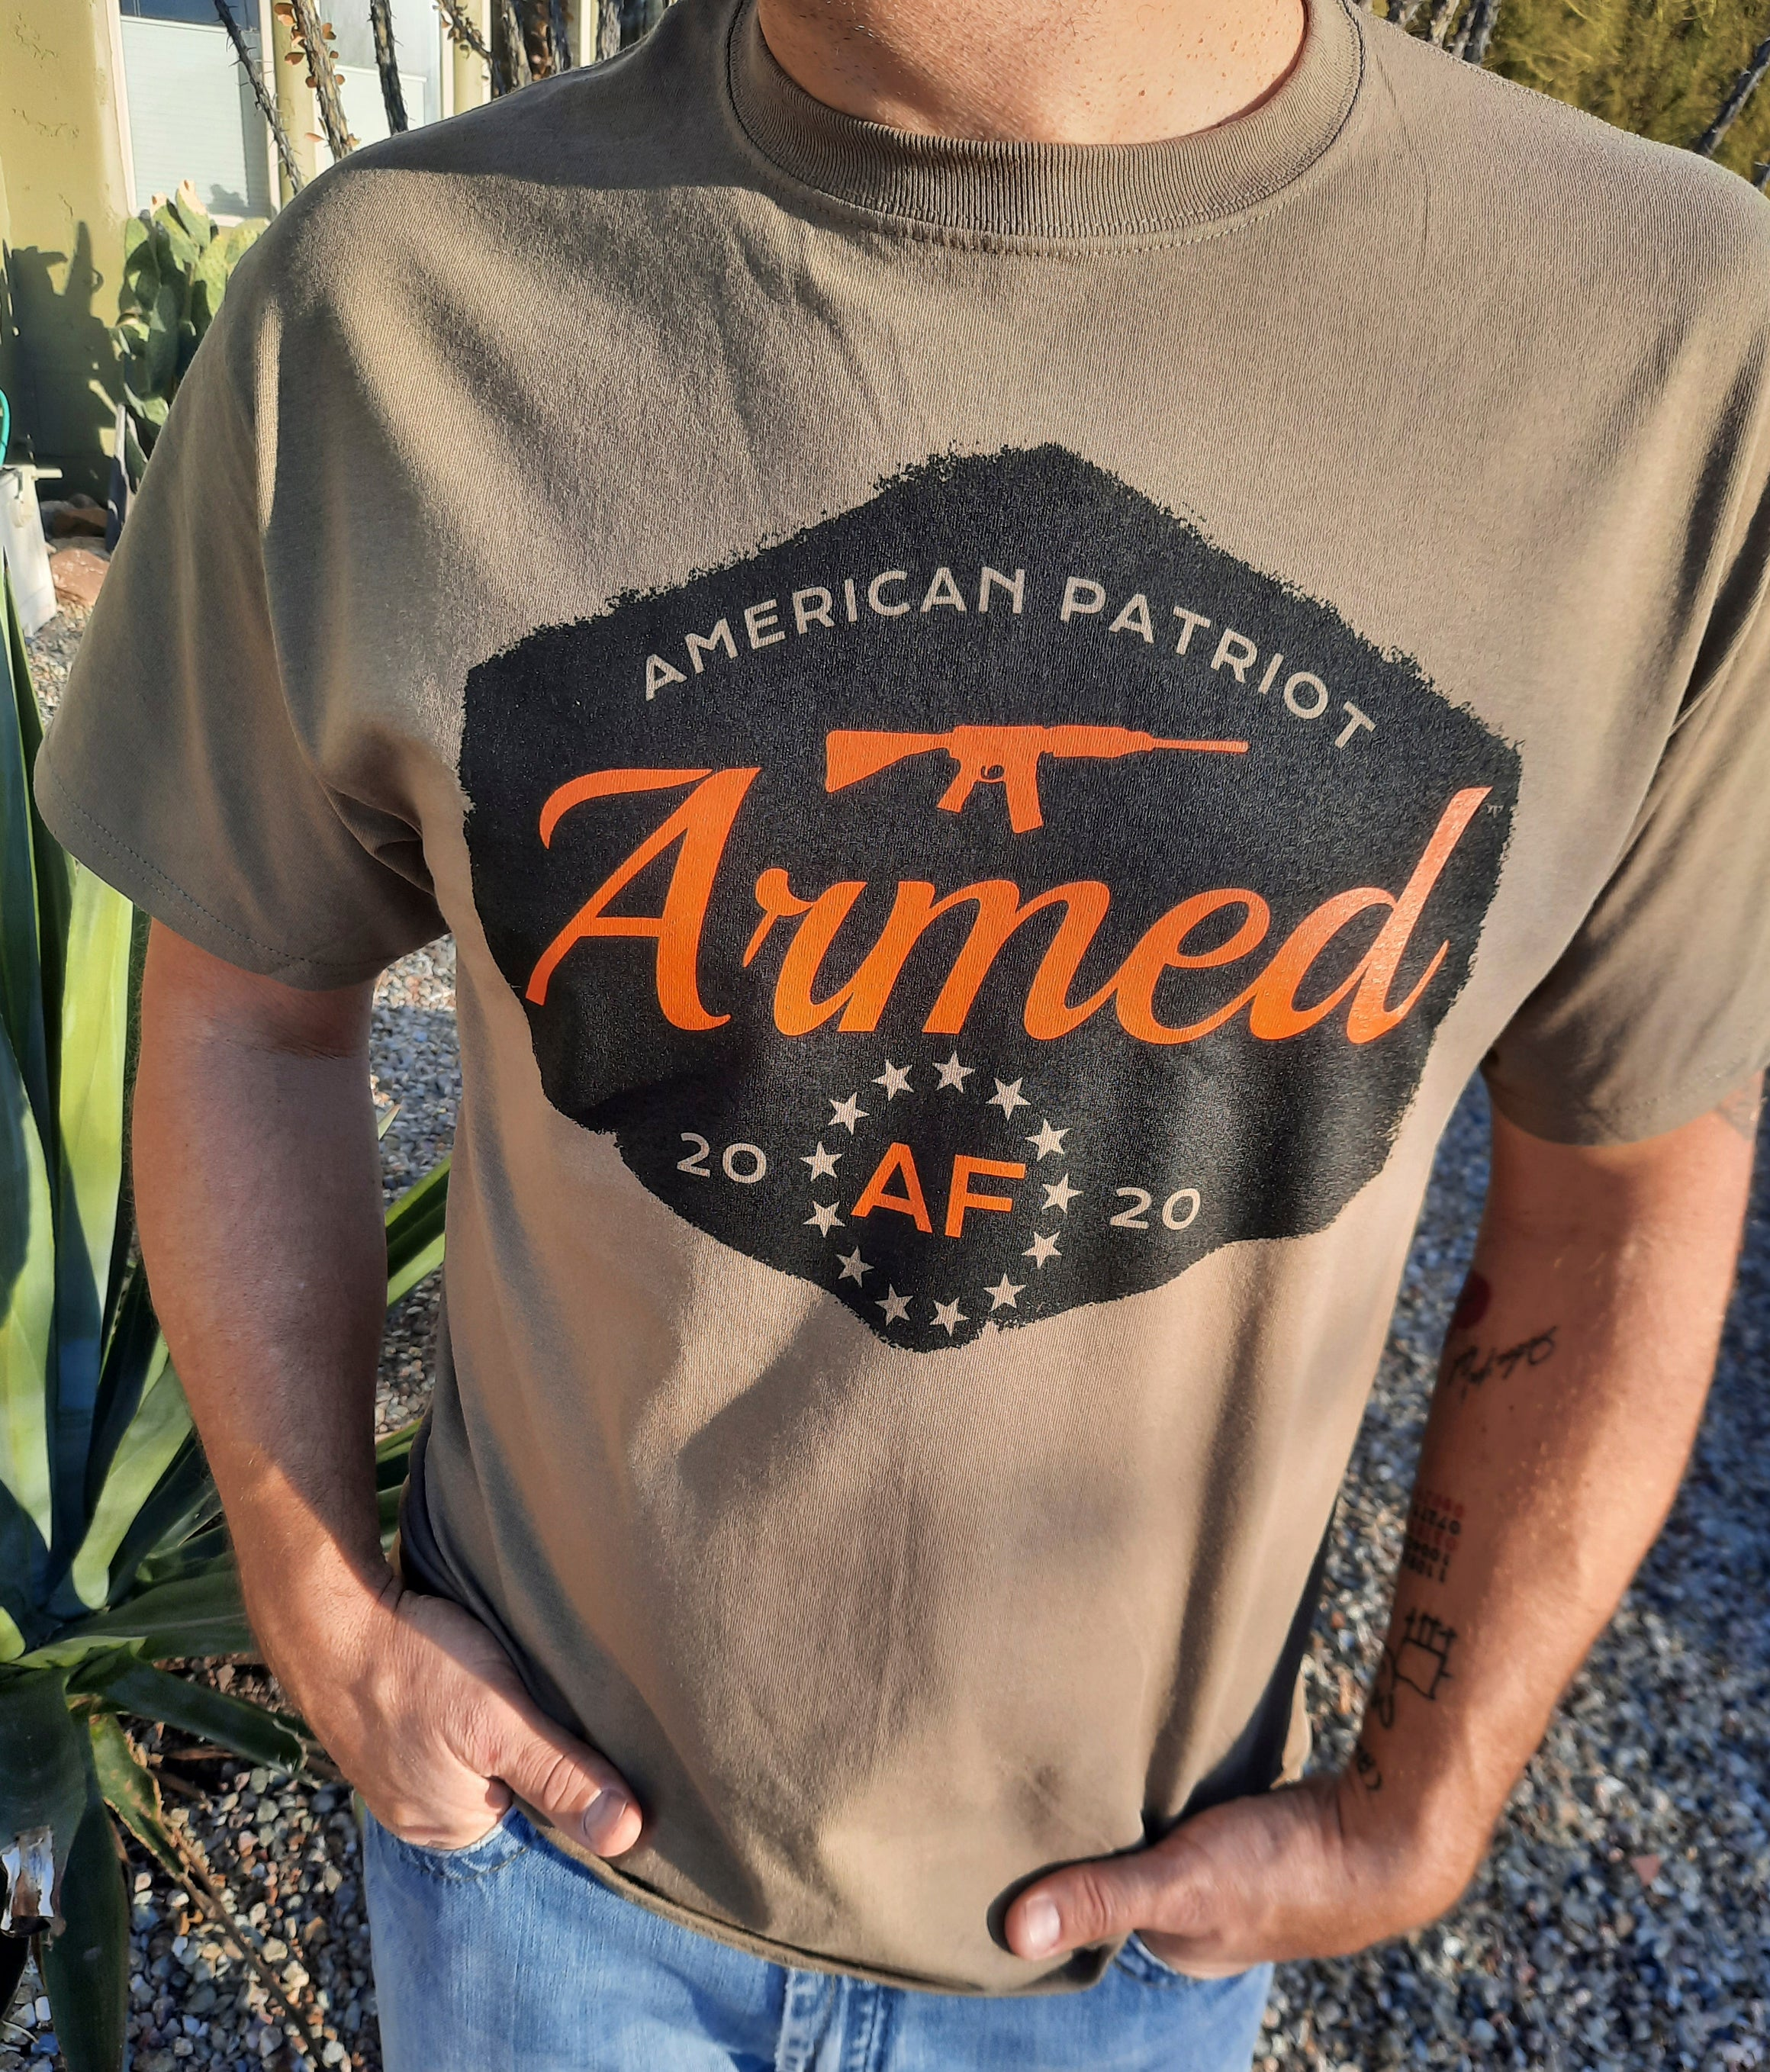 American patriot t-shirt on model armed af